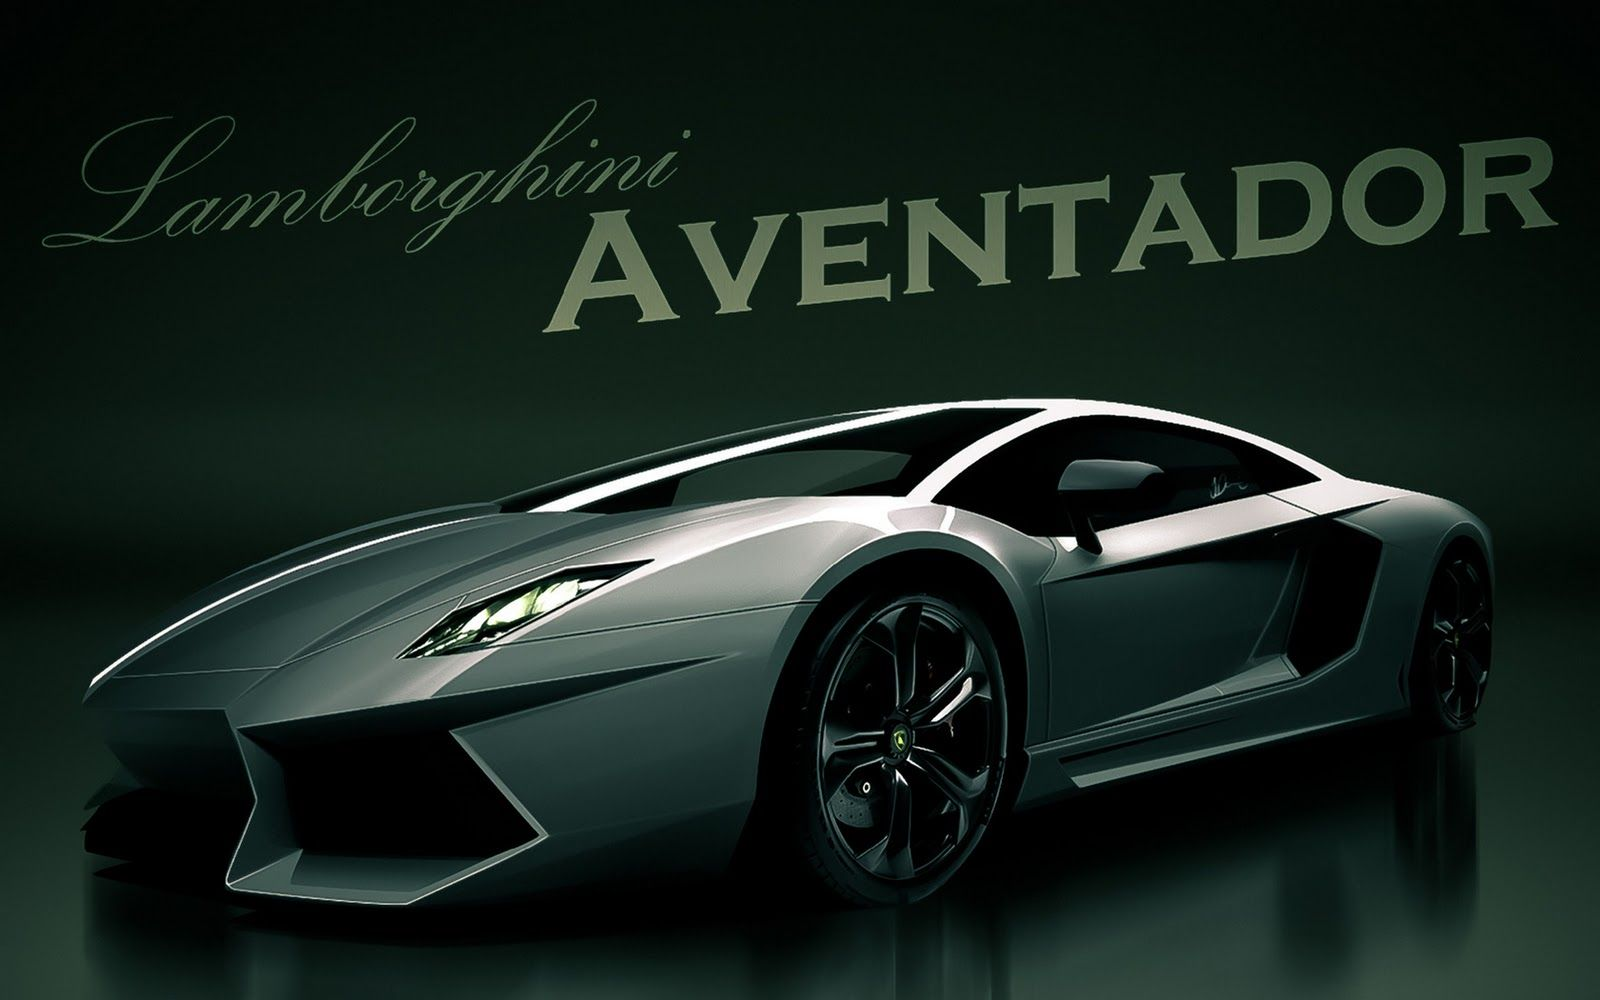 HD Wallpapers Widescreen 1080P 3D | Lamborghini Aventador ...